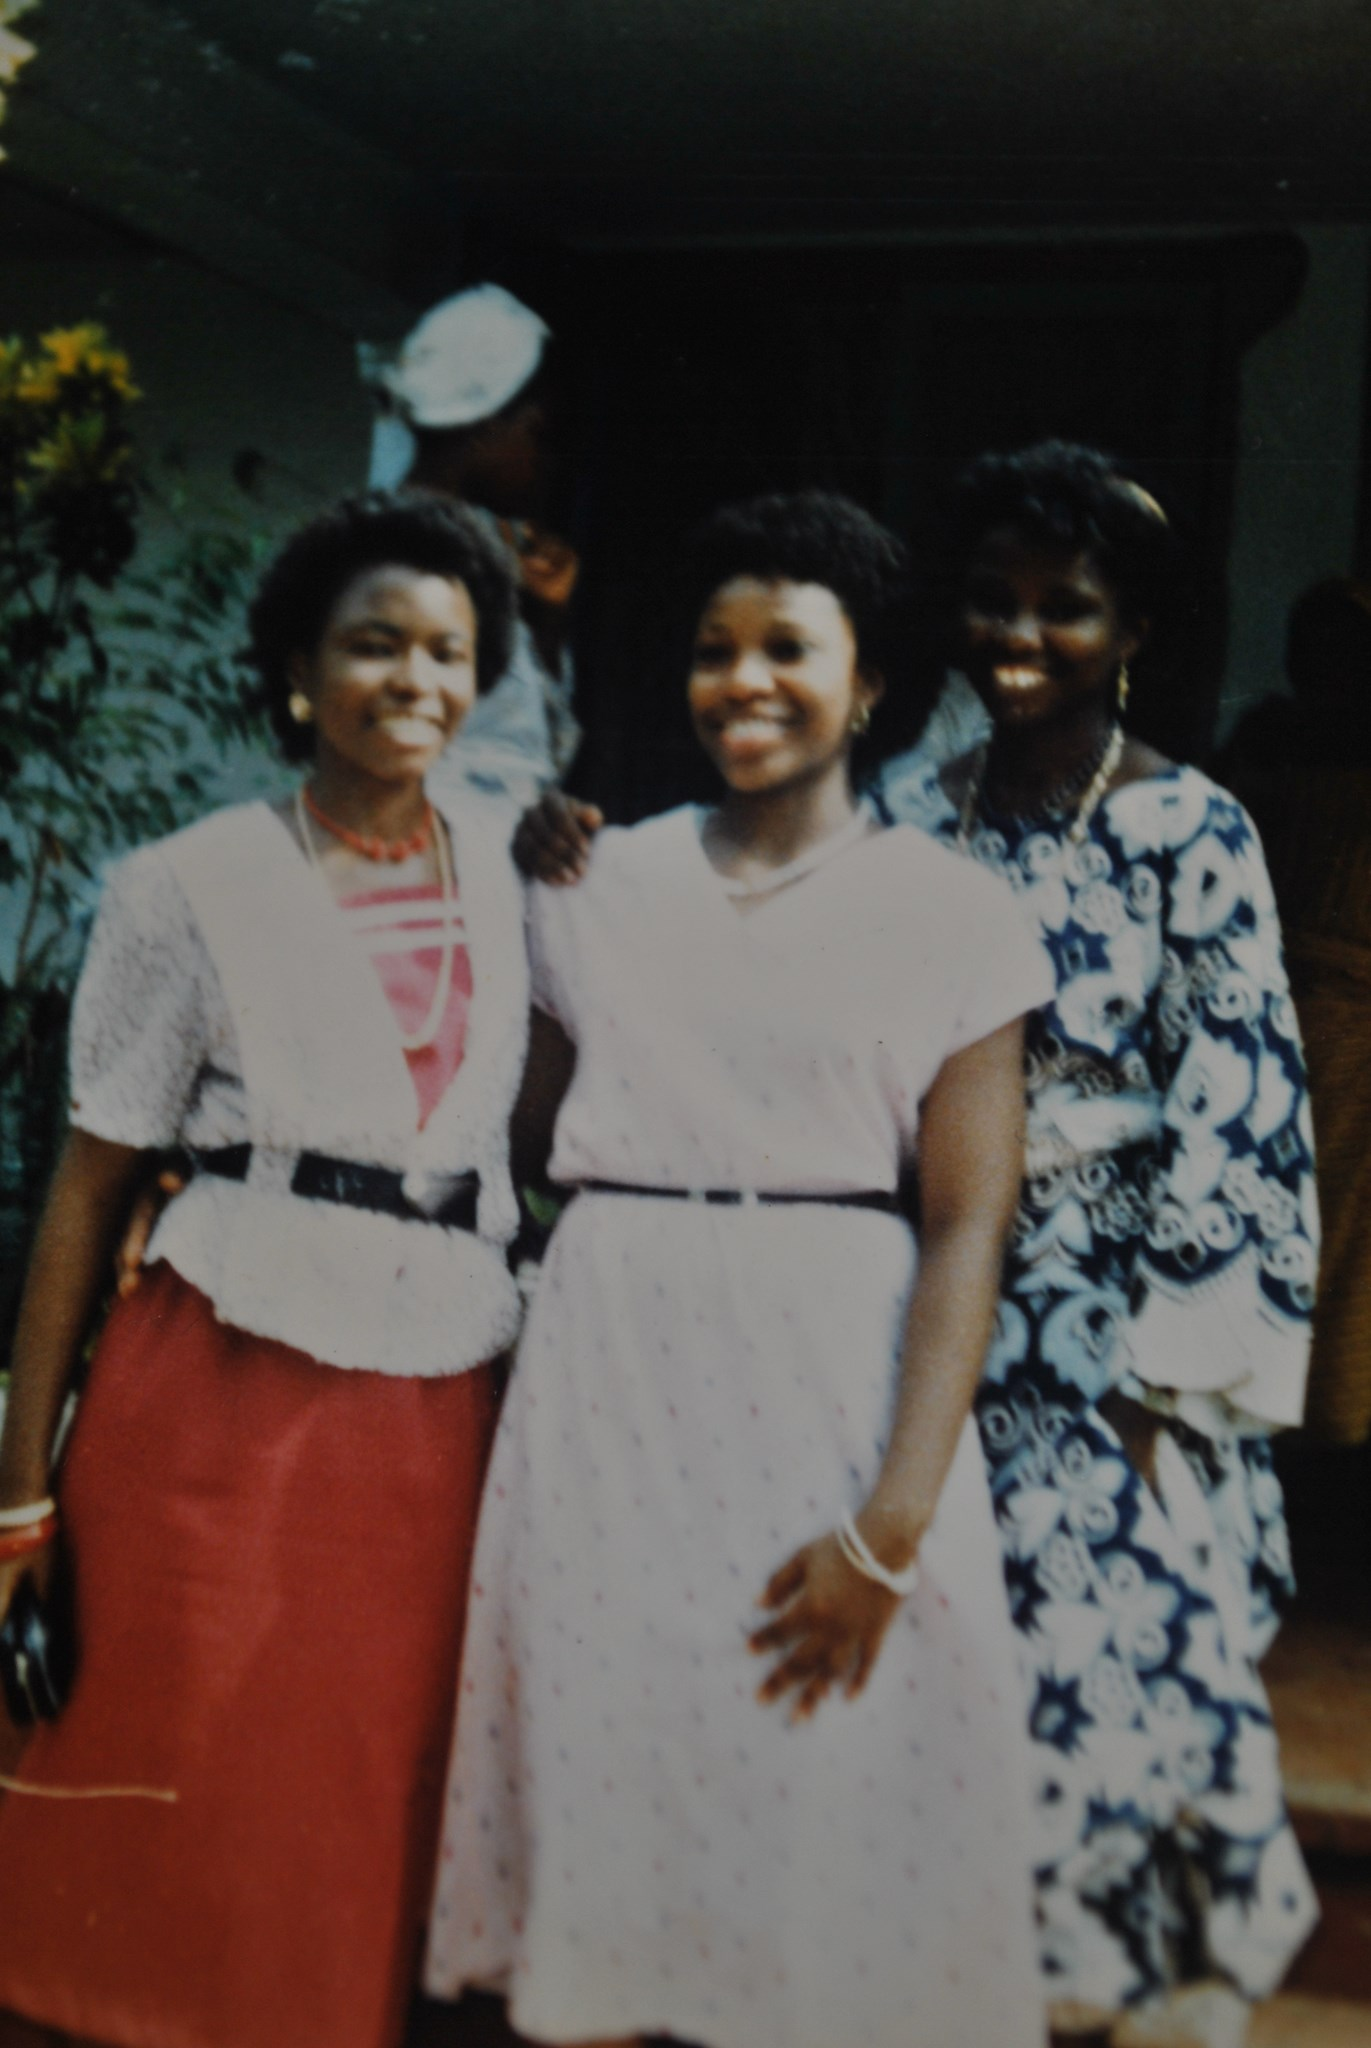 Tade and friends, UCH 1987 005 { Tade at the middle, Buki on the right and Ope on the left.